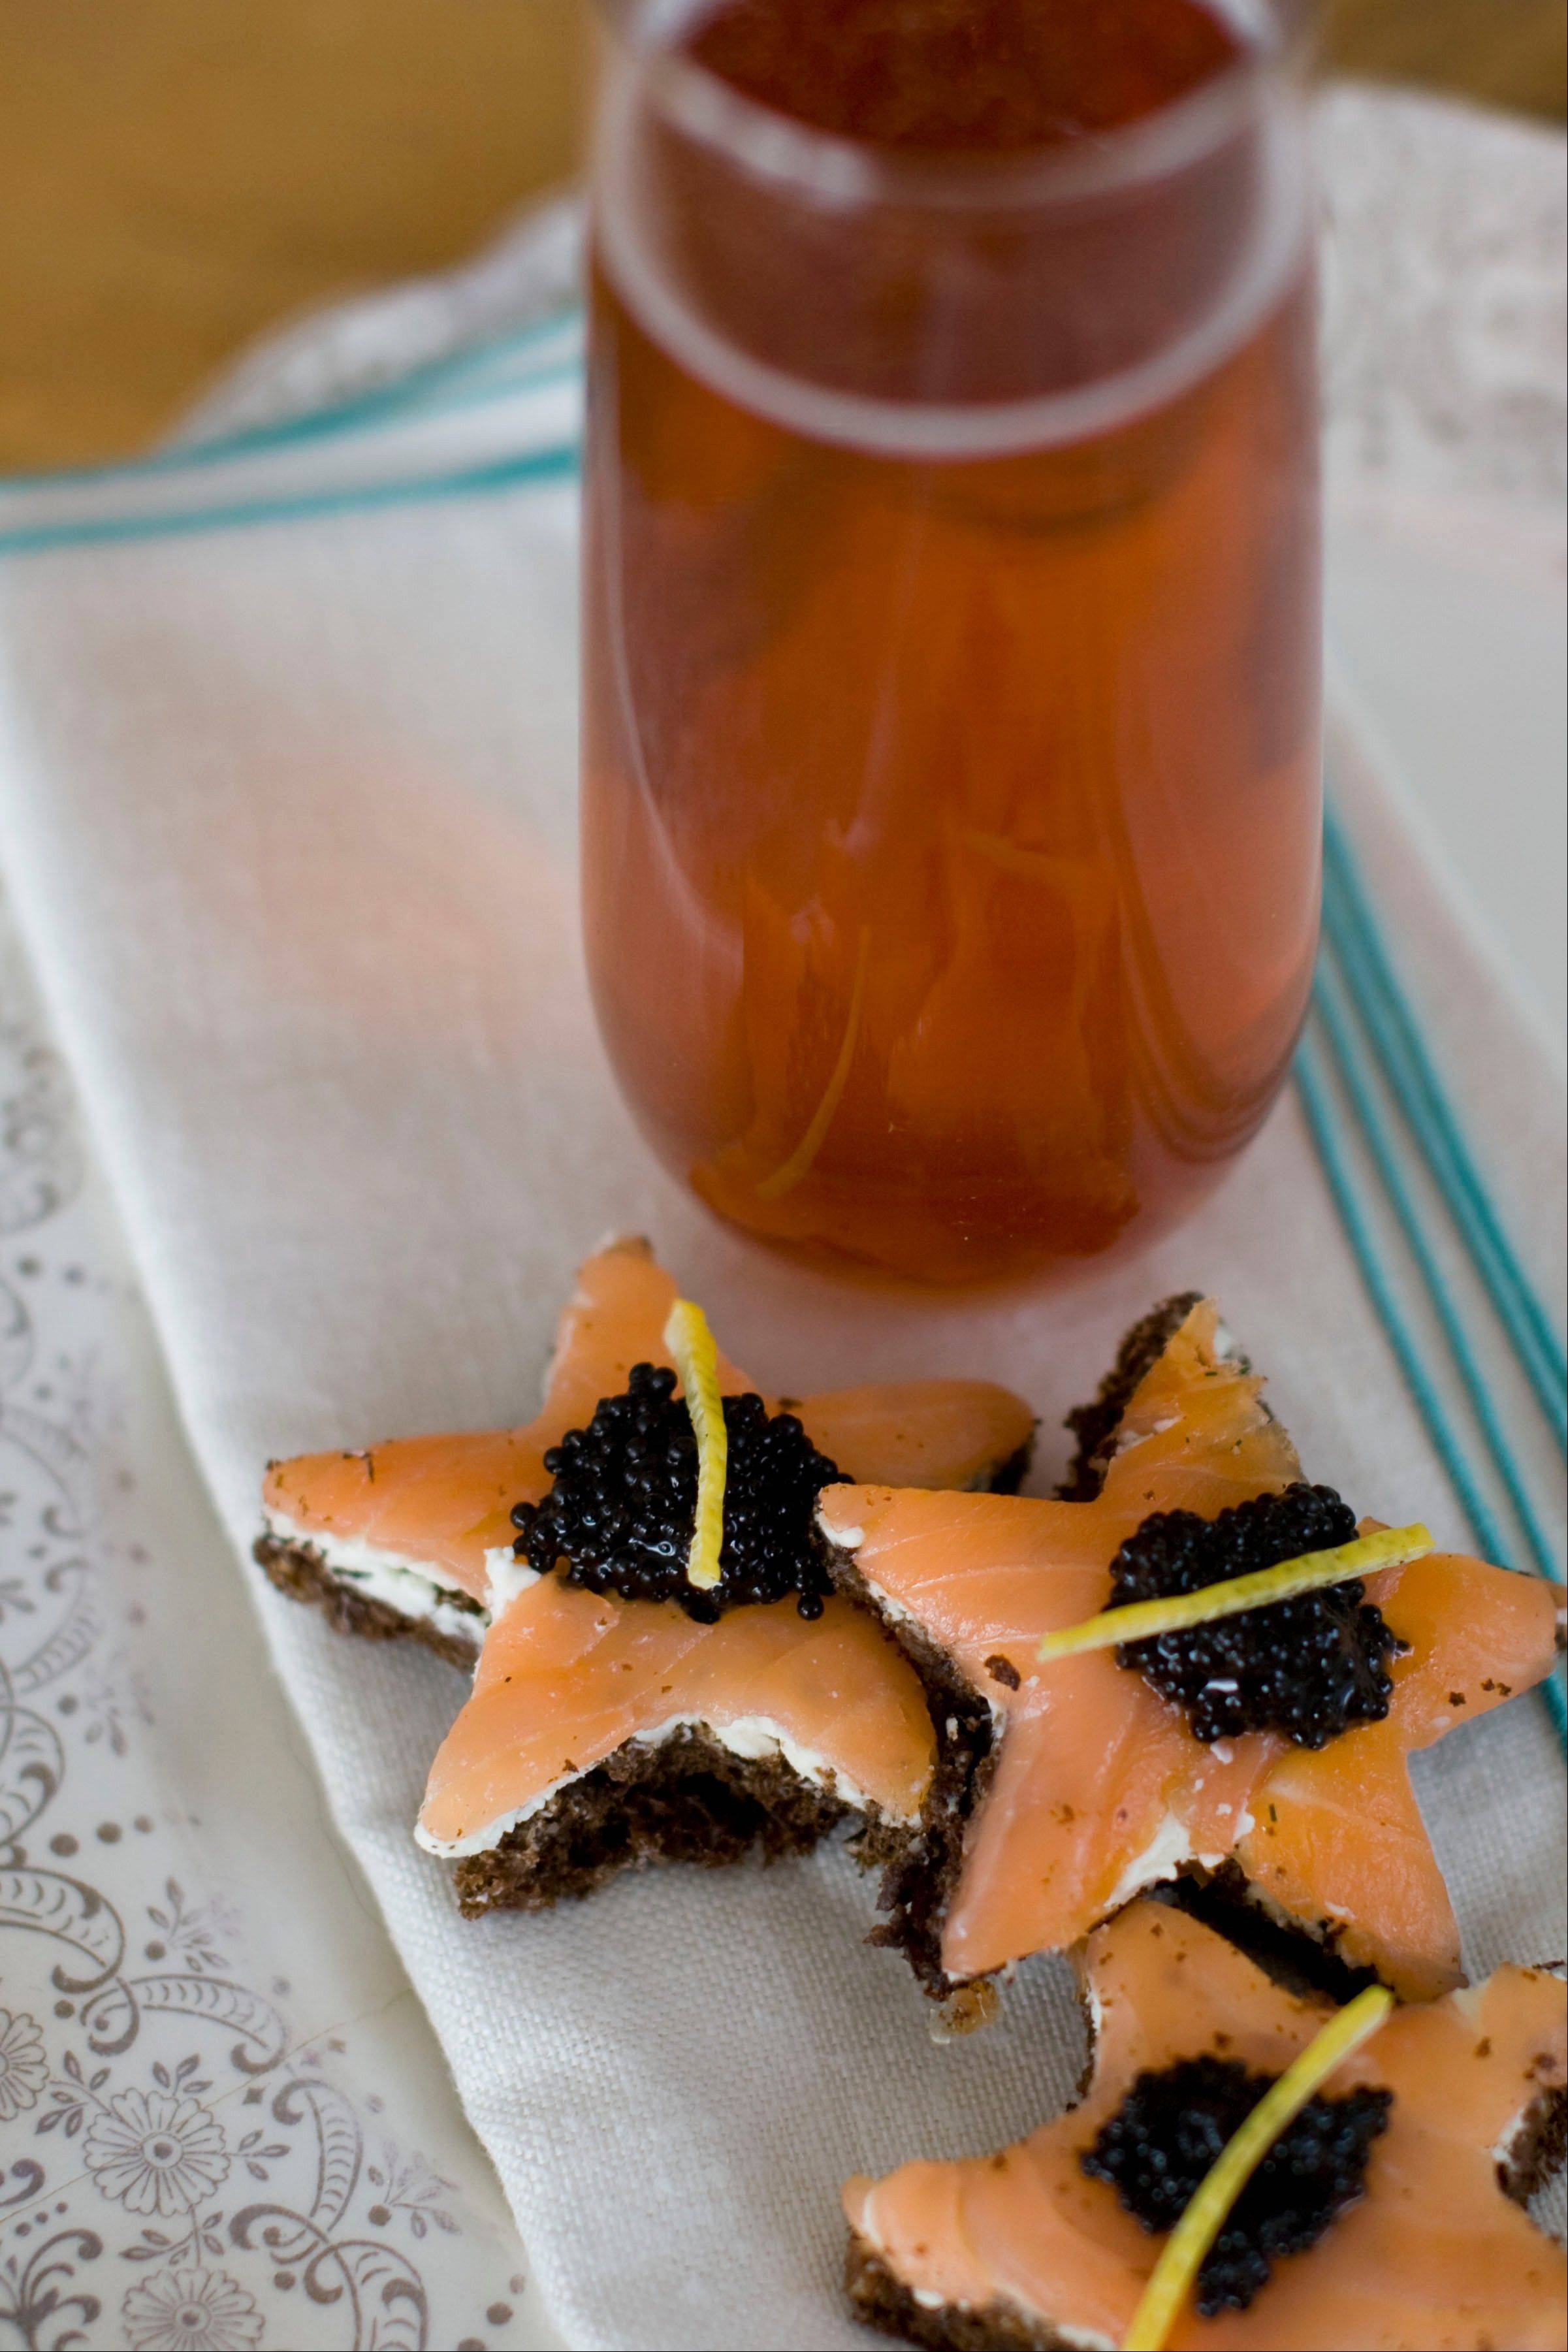 Pay homage to chef-to-the-stars Wolfgang Puck by serving Smoked Salmon Stars at your Oscar party.